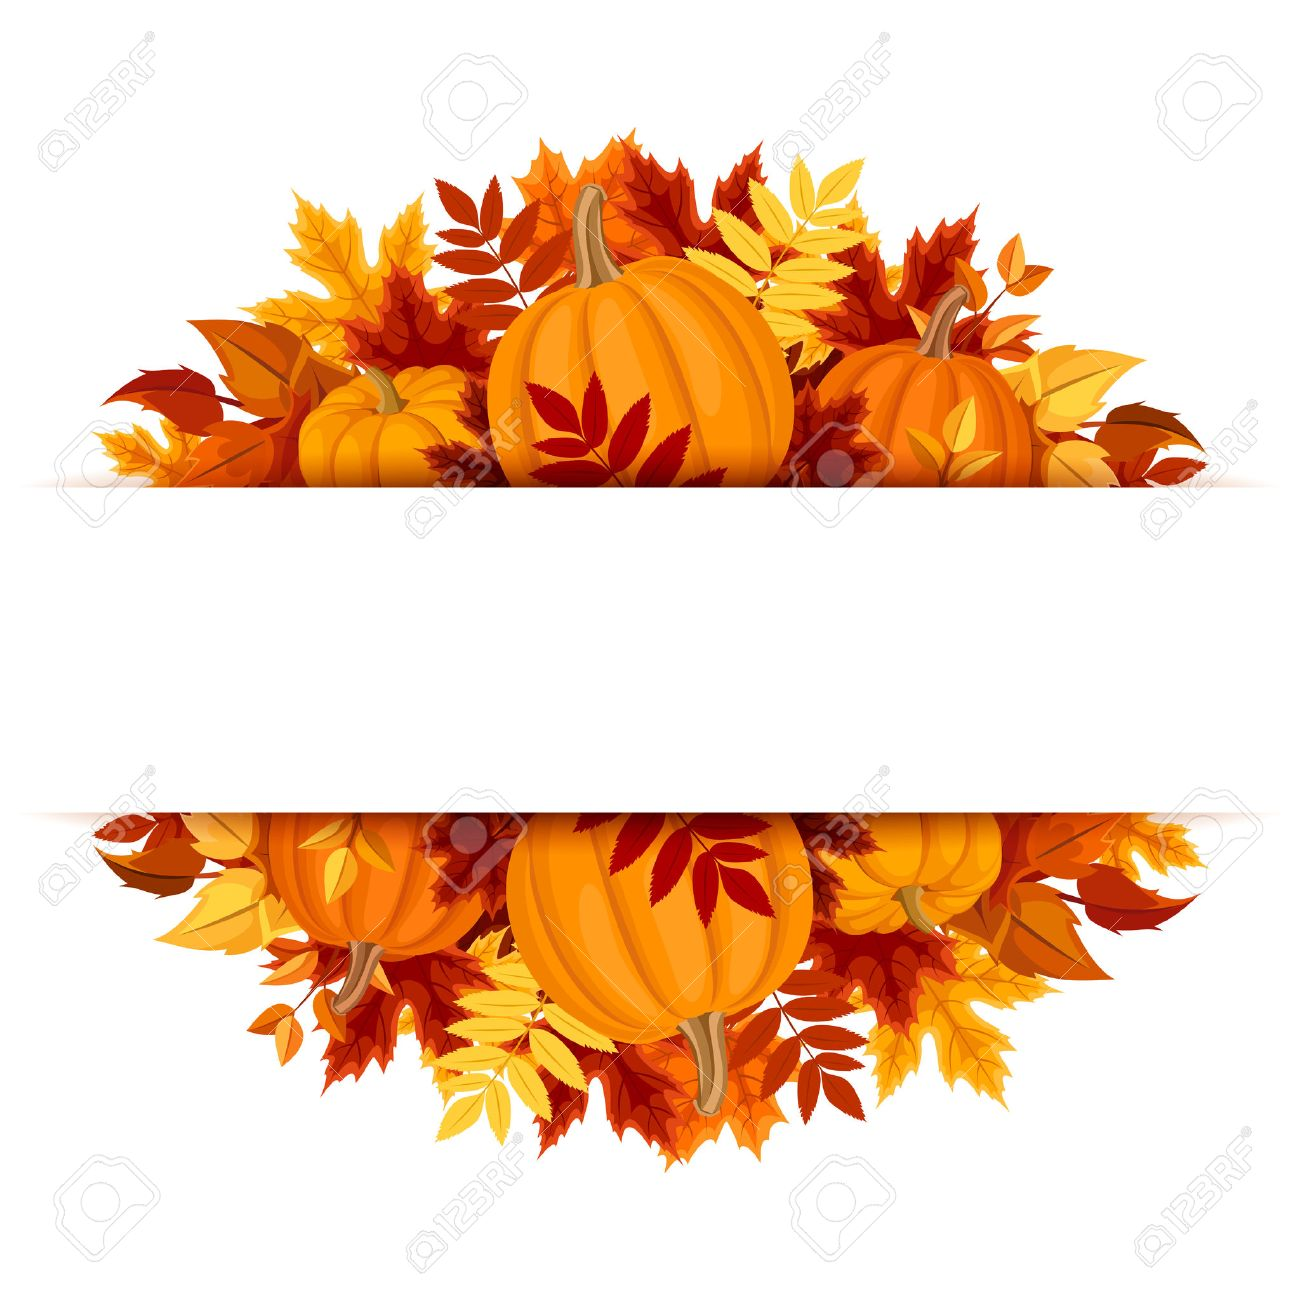 Banner with pumpkins and colorful autumn leaves..